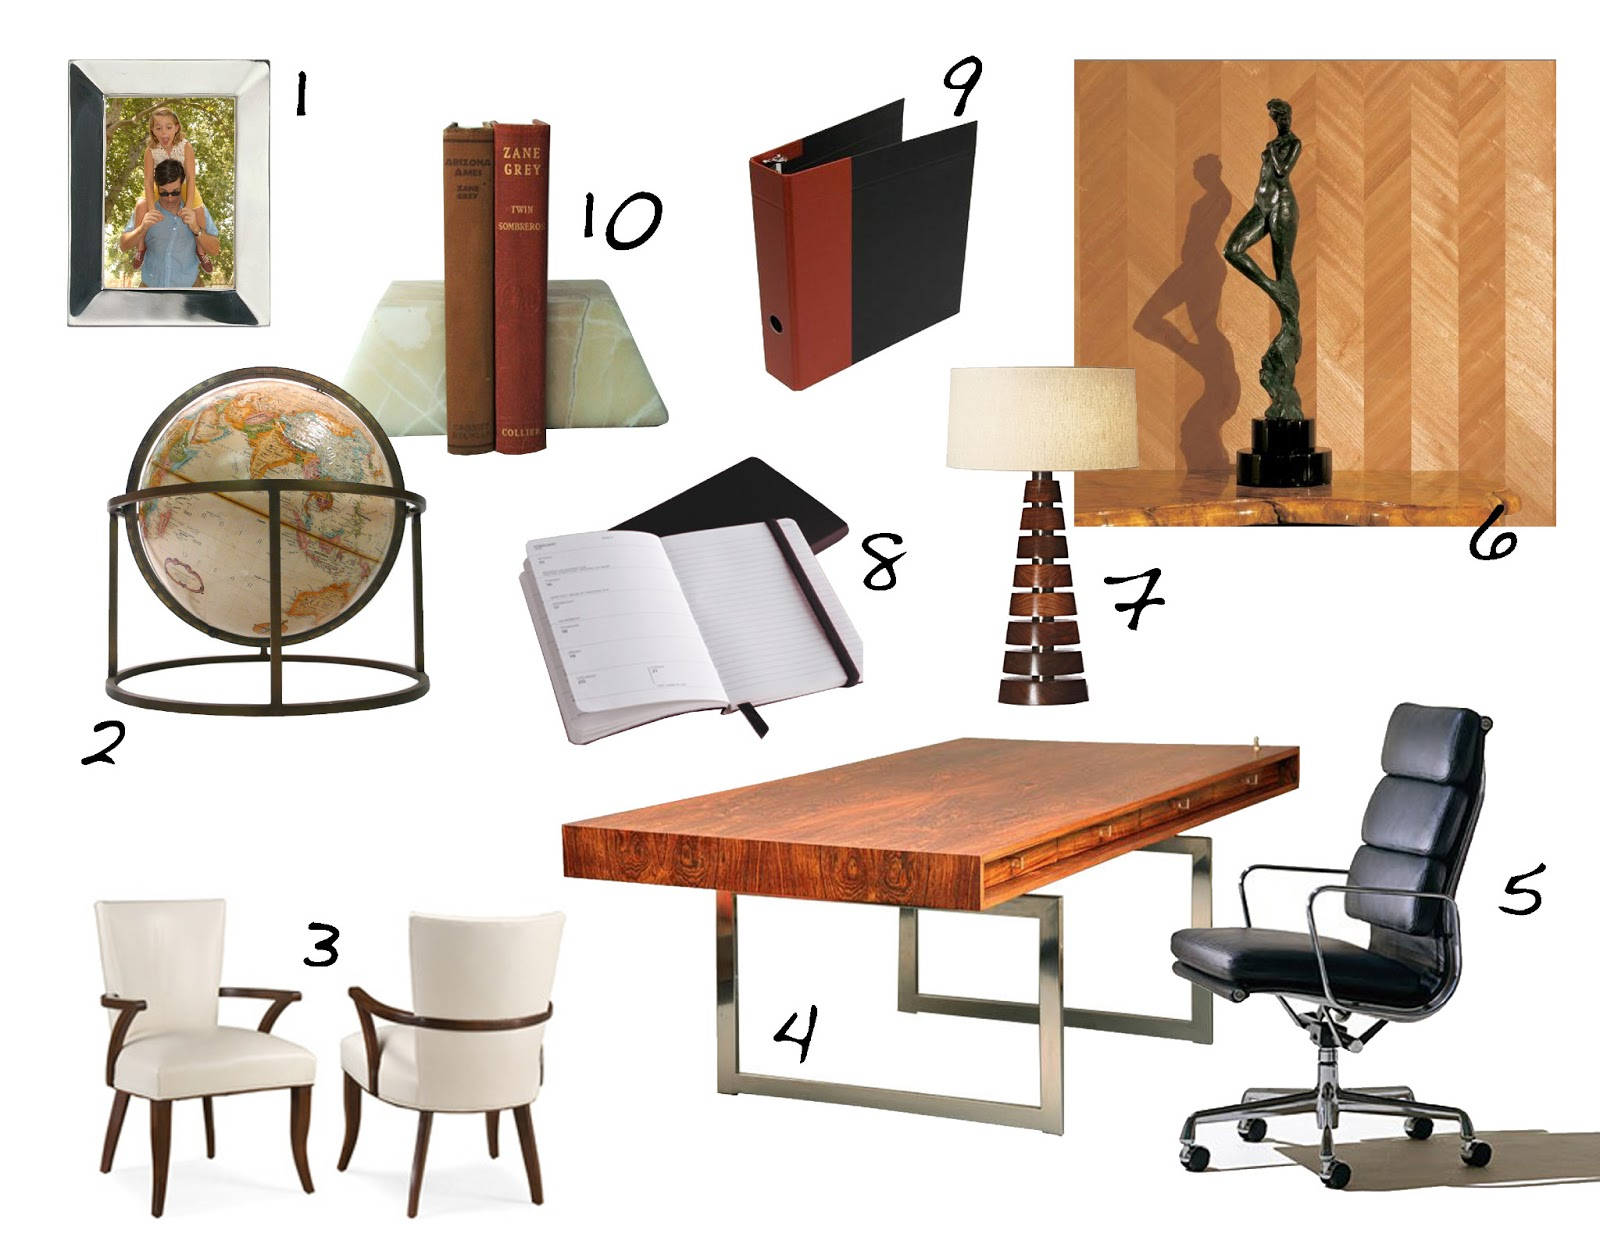 This inspiration board offers great ideas for a 60s inspired office space.